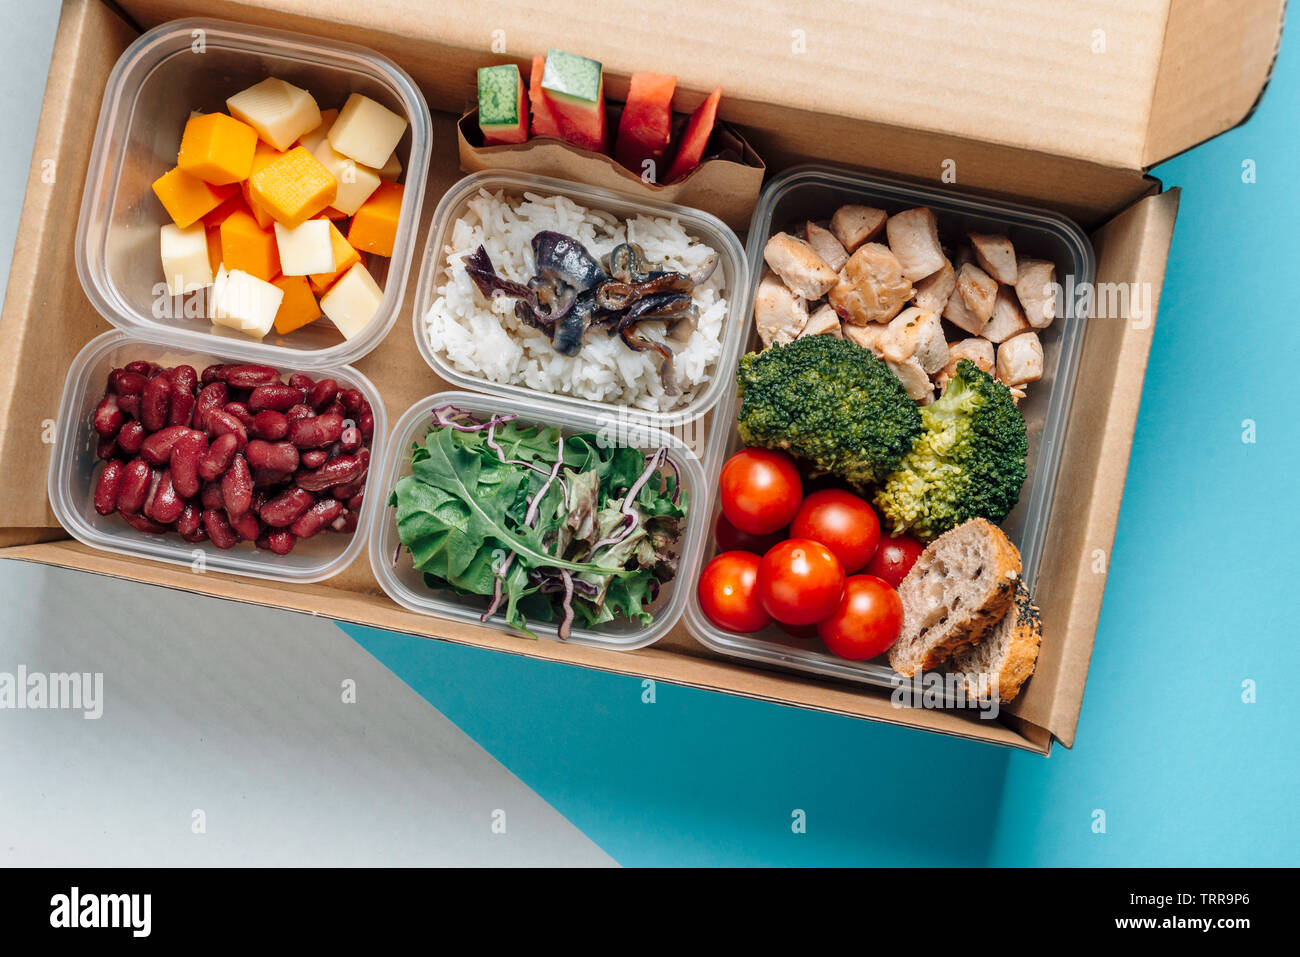 Healthy Food In Lunch Box Minimal Concept Of Eating At Workplace Balanced Nutrition Based On Macro Nutrients Protein Hydrates And Fats Home Food F Stock Photo Alamy